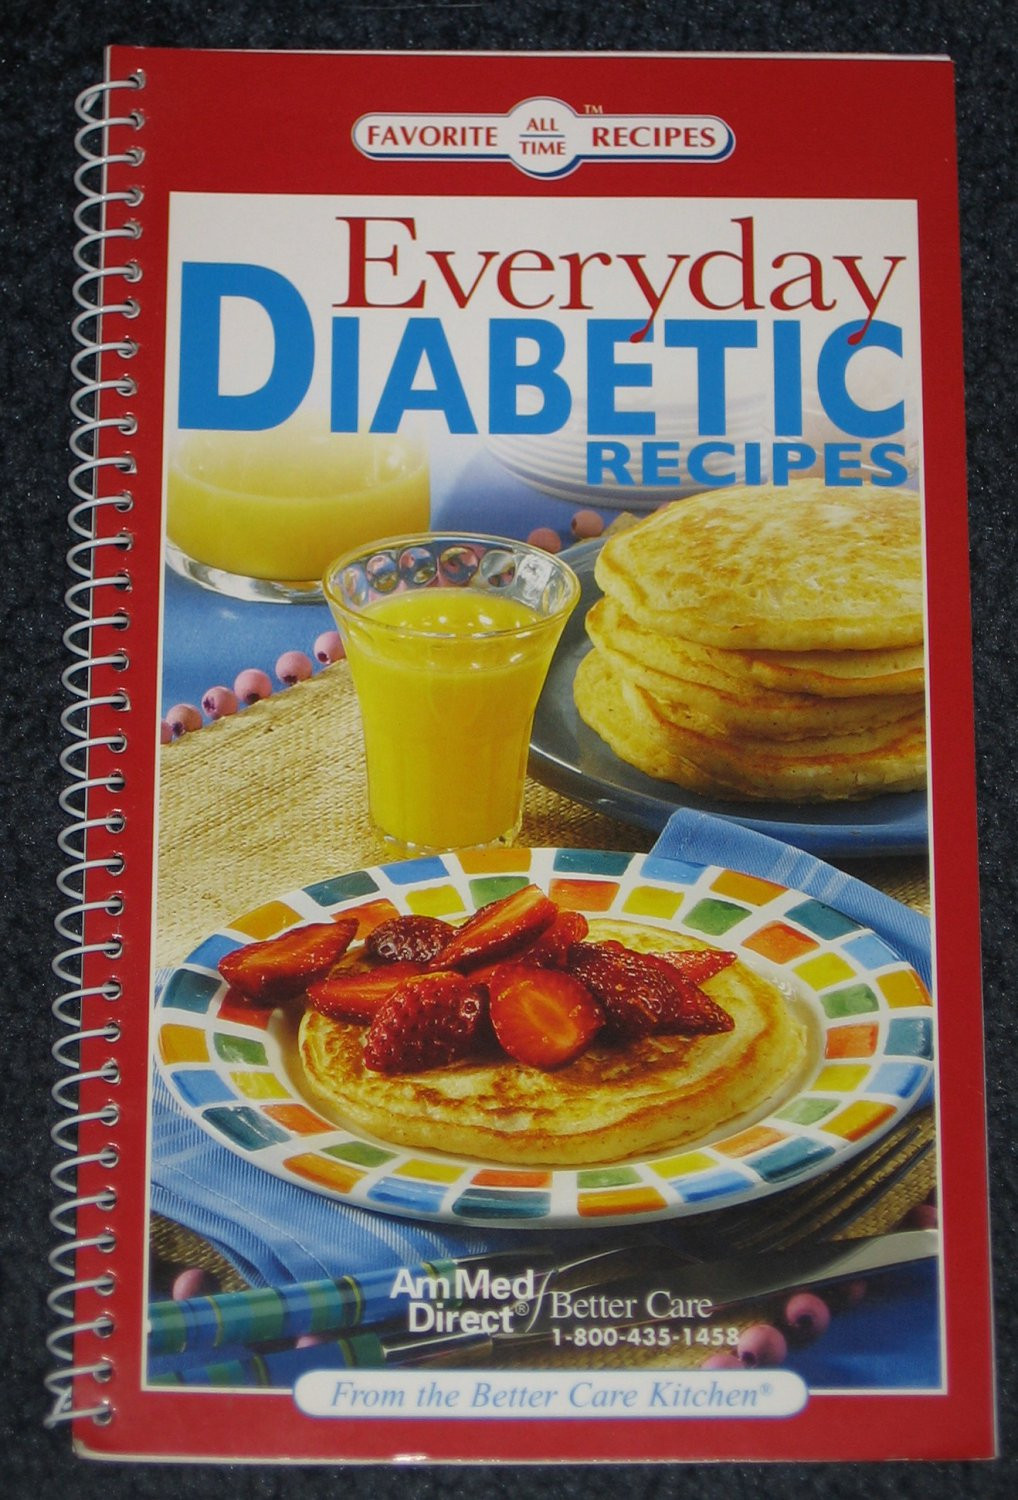 Everyday Diabetic Recipes  Everyday Diabetic Recipes Cookbook Favorite All Time